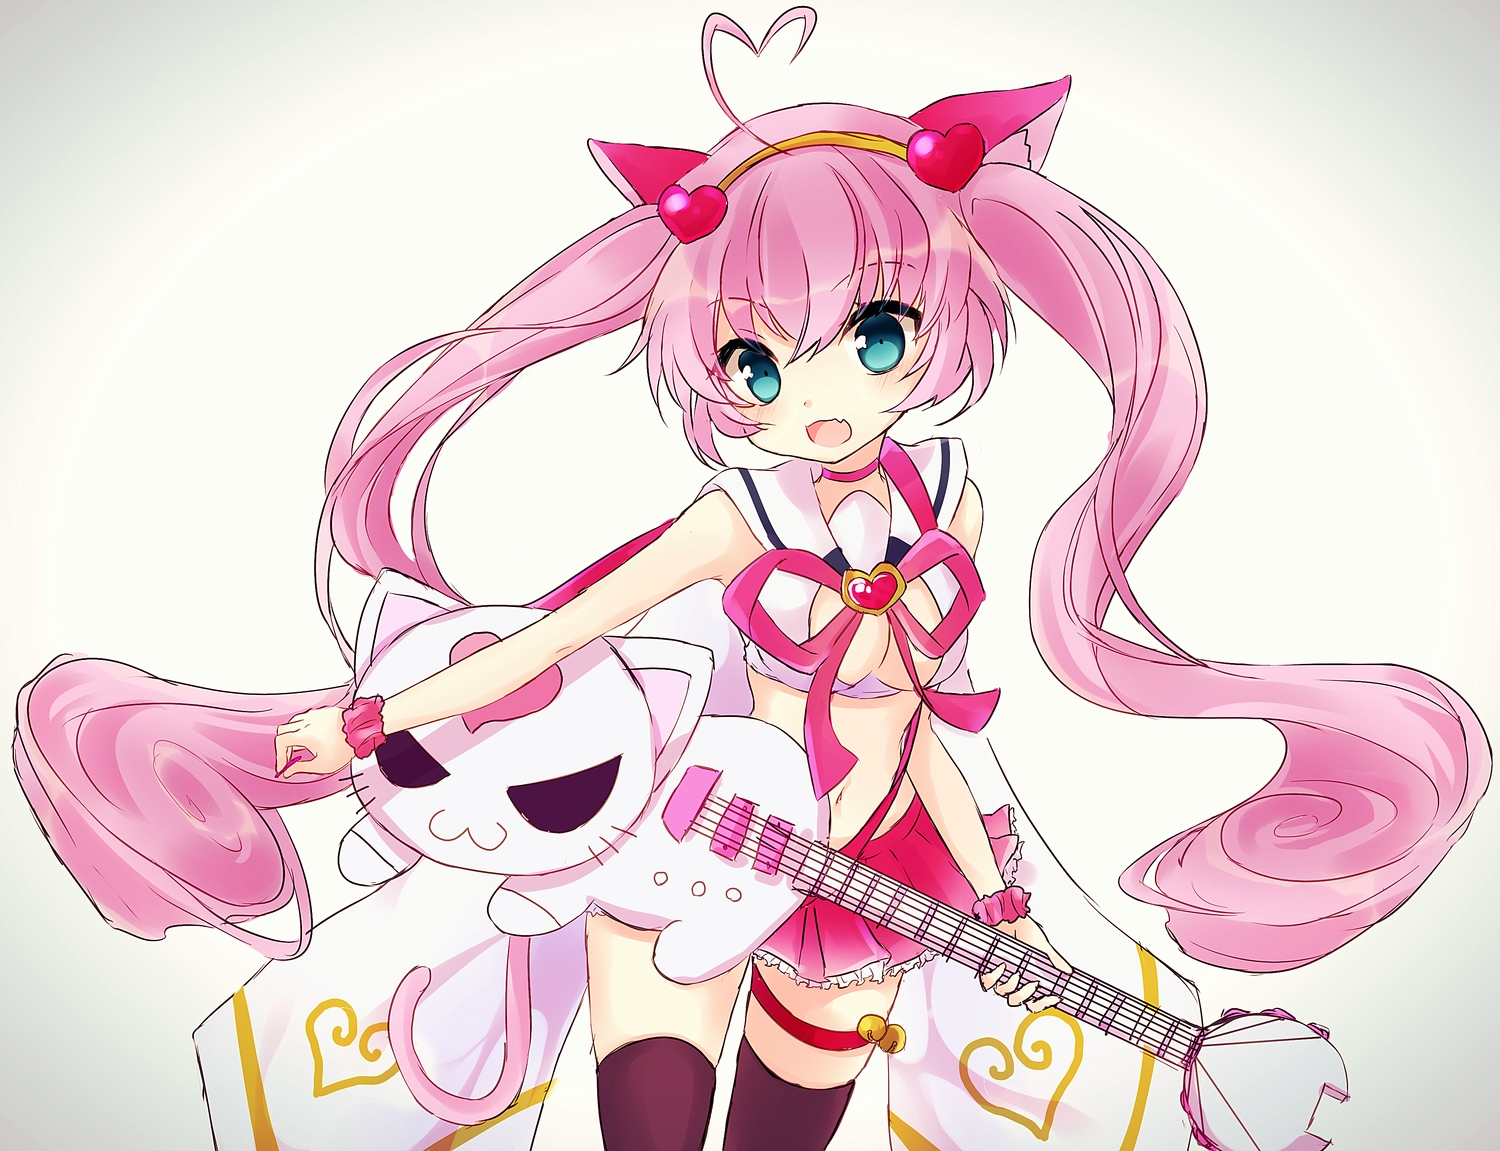 animal_ears blue_eyes breasts cat_smile cleavage fang guitar headband instrument long_hair mareta_mochi pink_hair rosia_(show_by_rock!) show_by_rock!! skirt tail thighhighs twintails wristwear